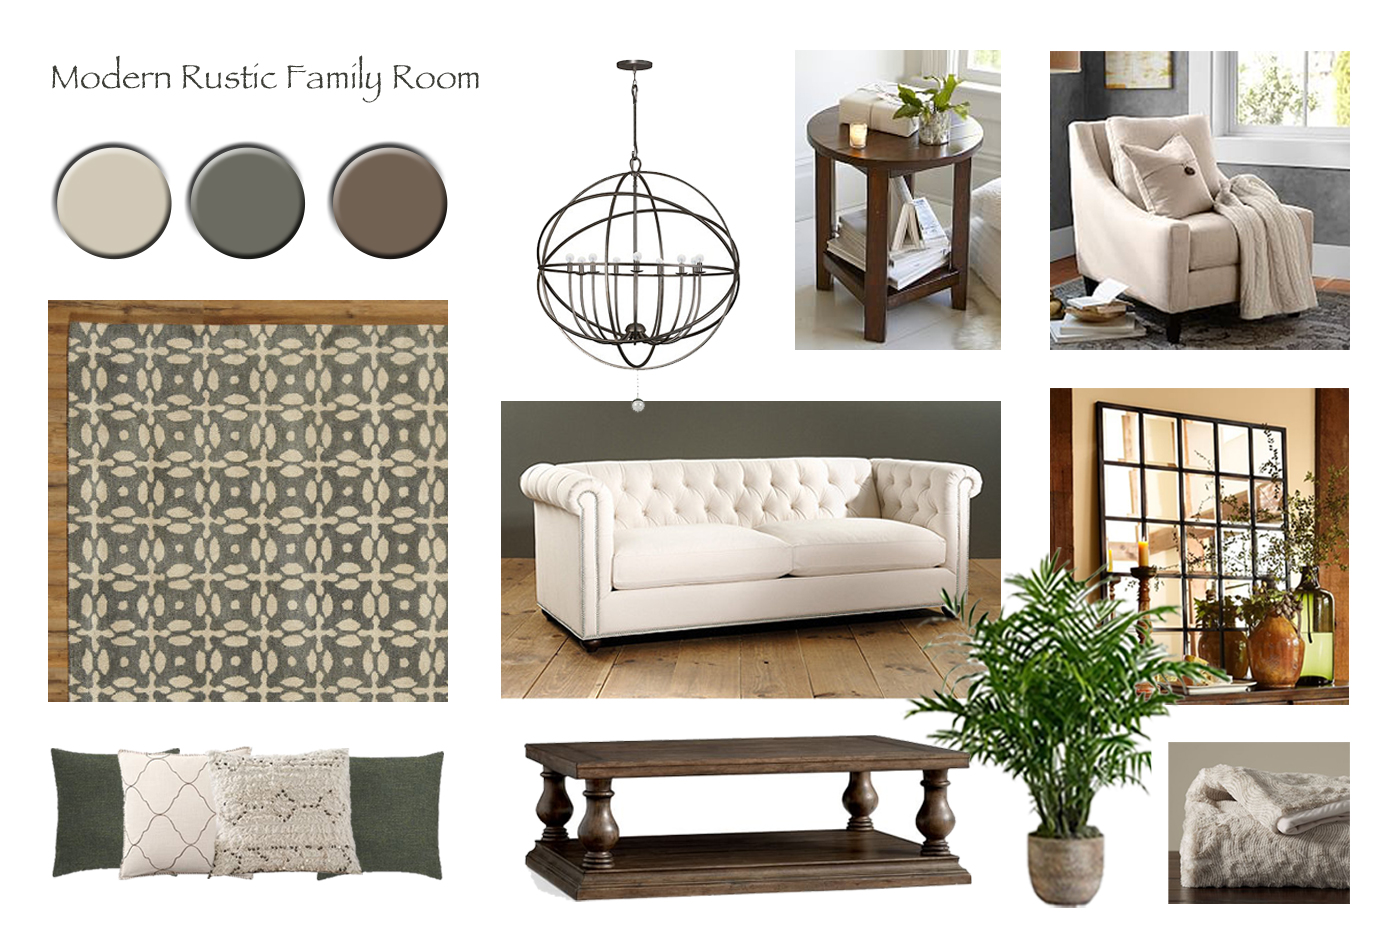 Rustic Family Room Modern Rustic Family Room Online Interior Design